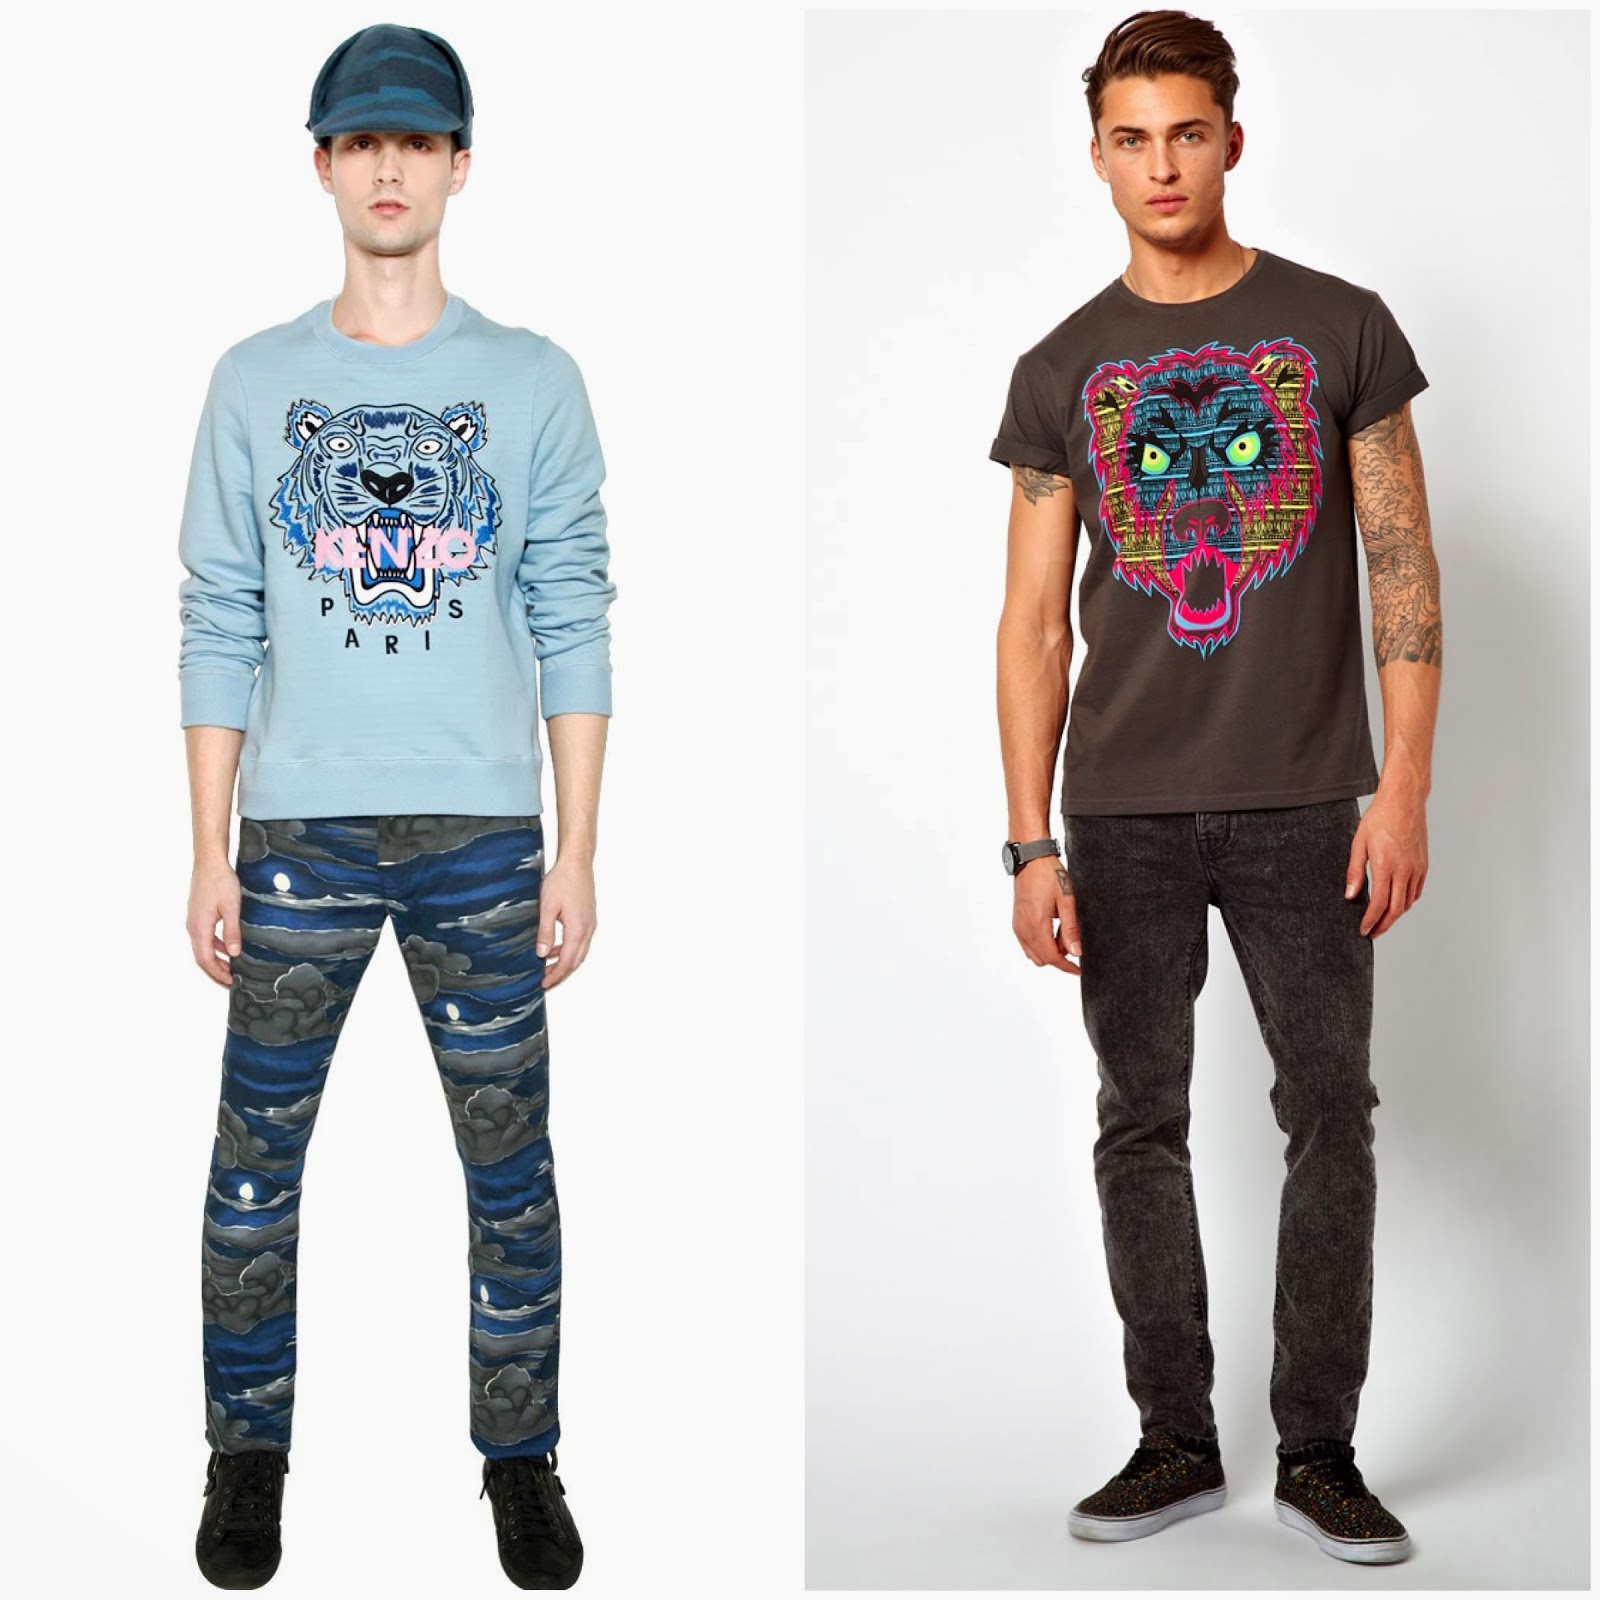 00O00 Menswear Blog: The weekend edition: Kenzo for the winter, and ASOS for the summer